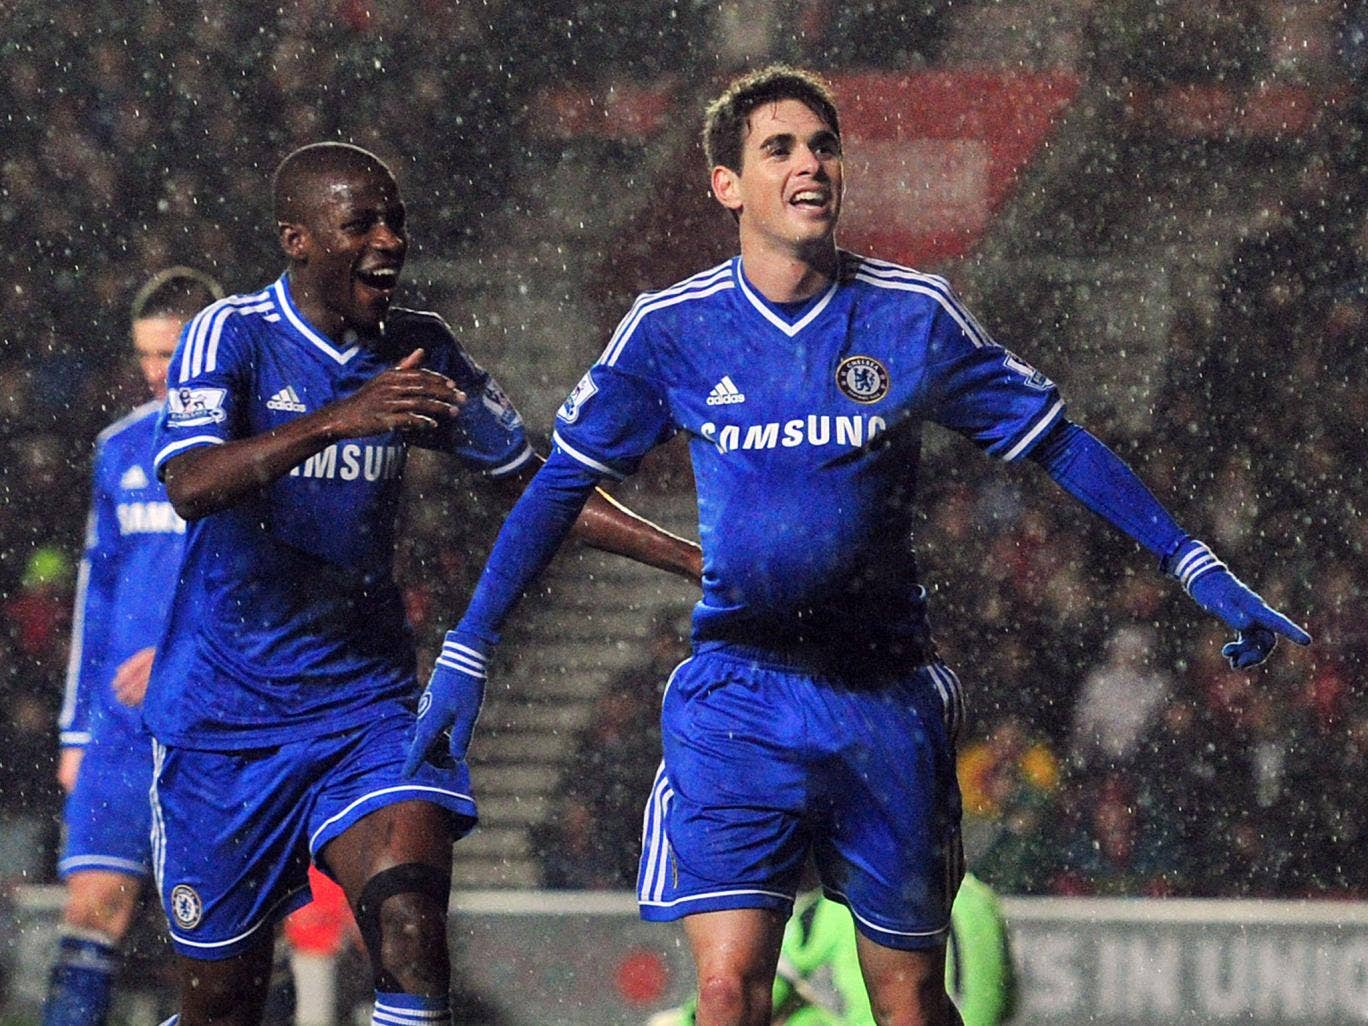 Ramires and Oscar celebrate after the latter scores Chelsea's second goal in the 2-0 win over Derby County